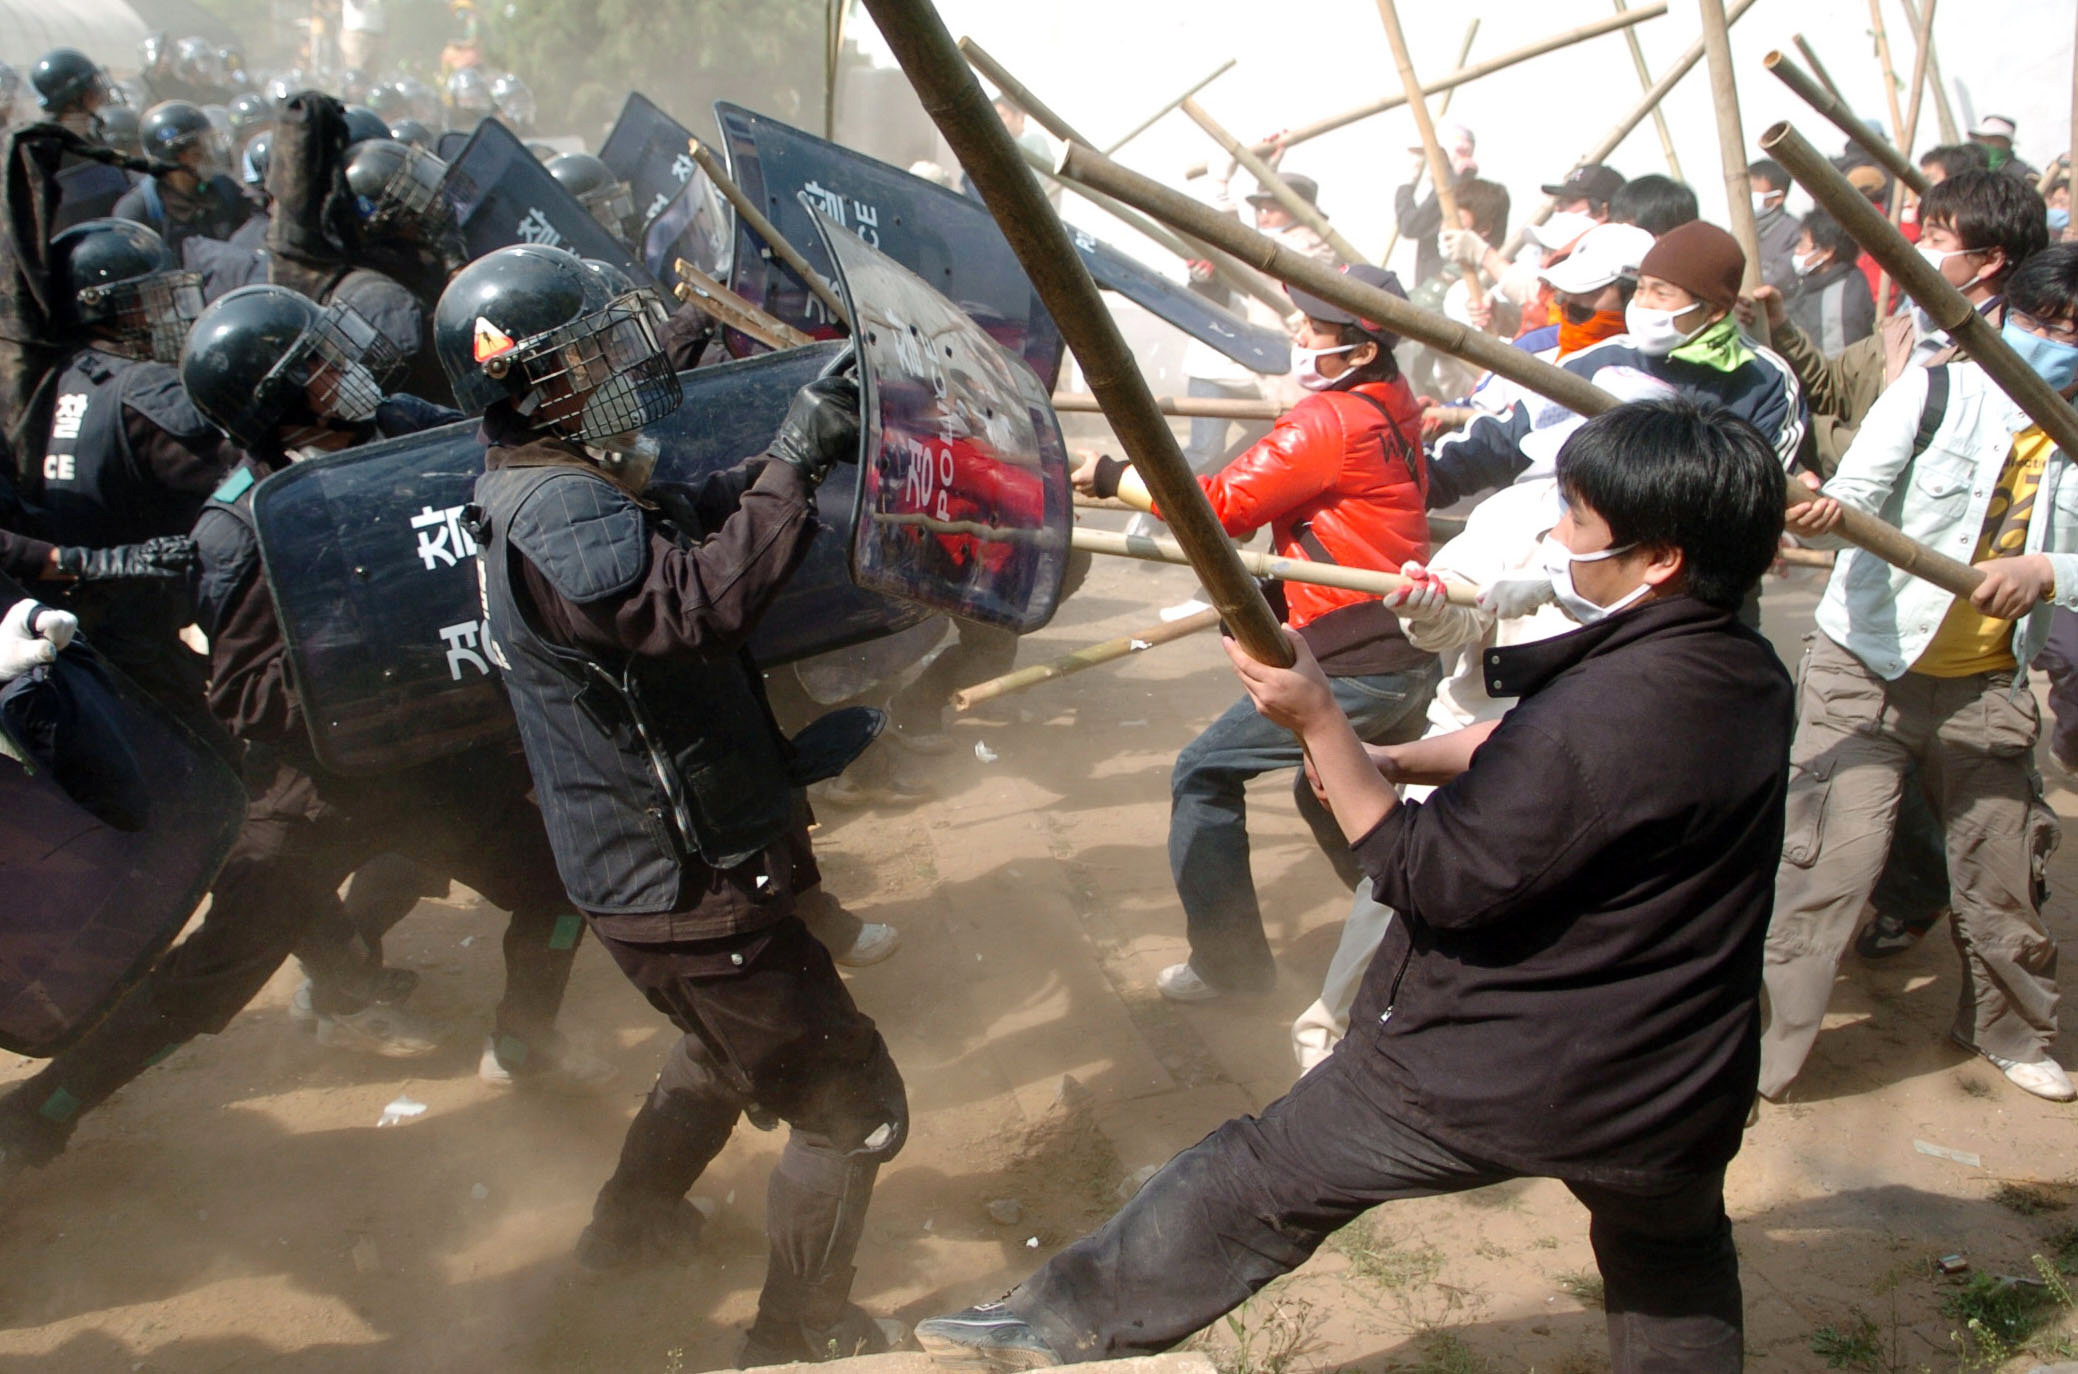 South Korean riot police break up a protest in Pyeongtaek, South Korea, near the U.S. military facility Camp Humphreys, on May 4, 2006.